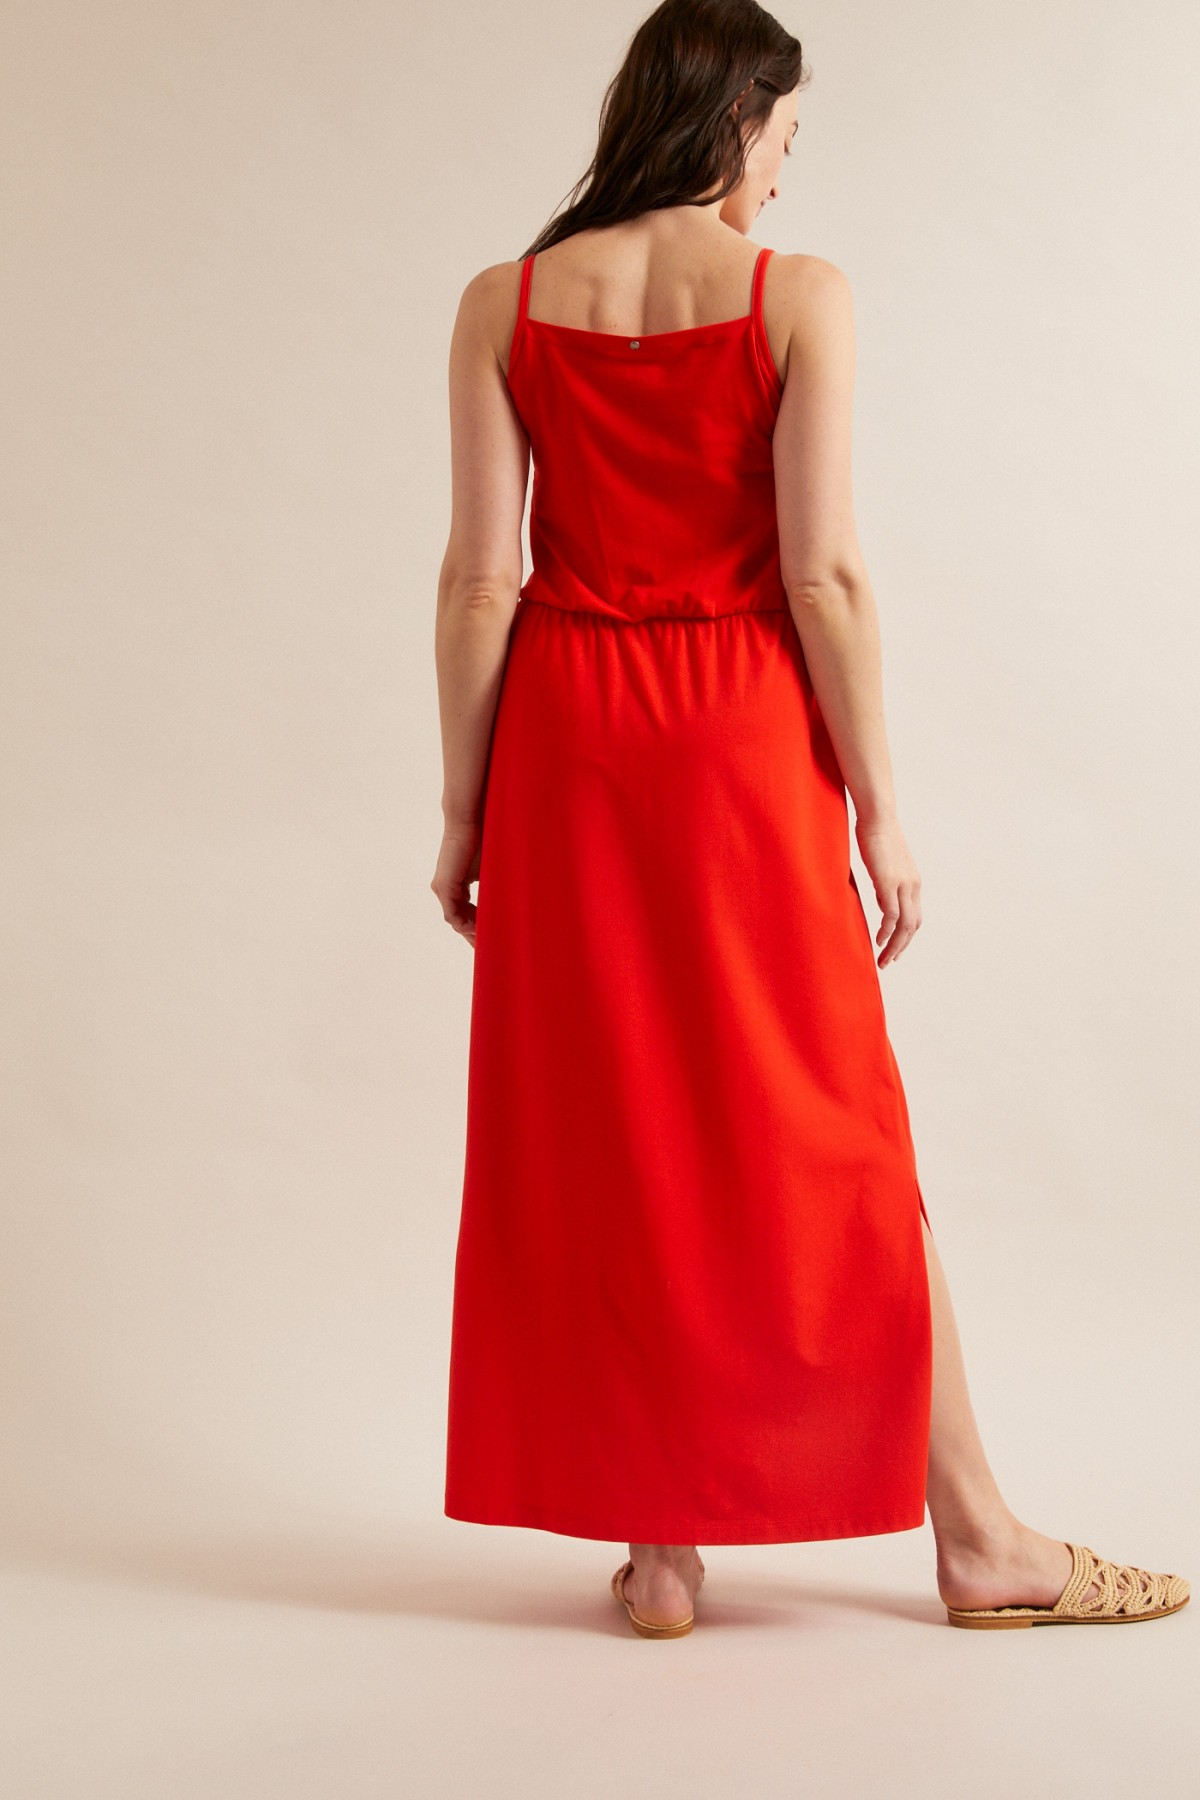 MAXI DRESS made of TENCEL™ Modal with organic cotton